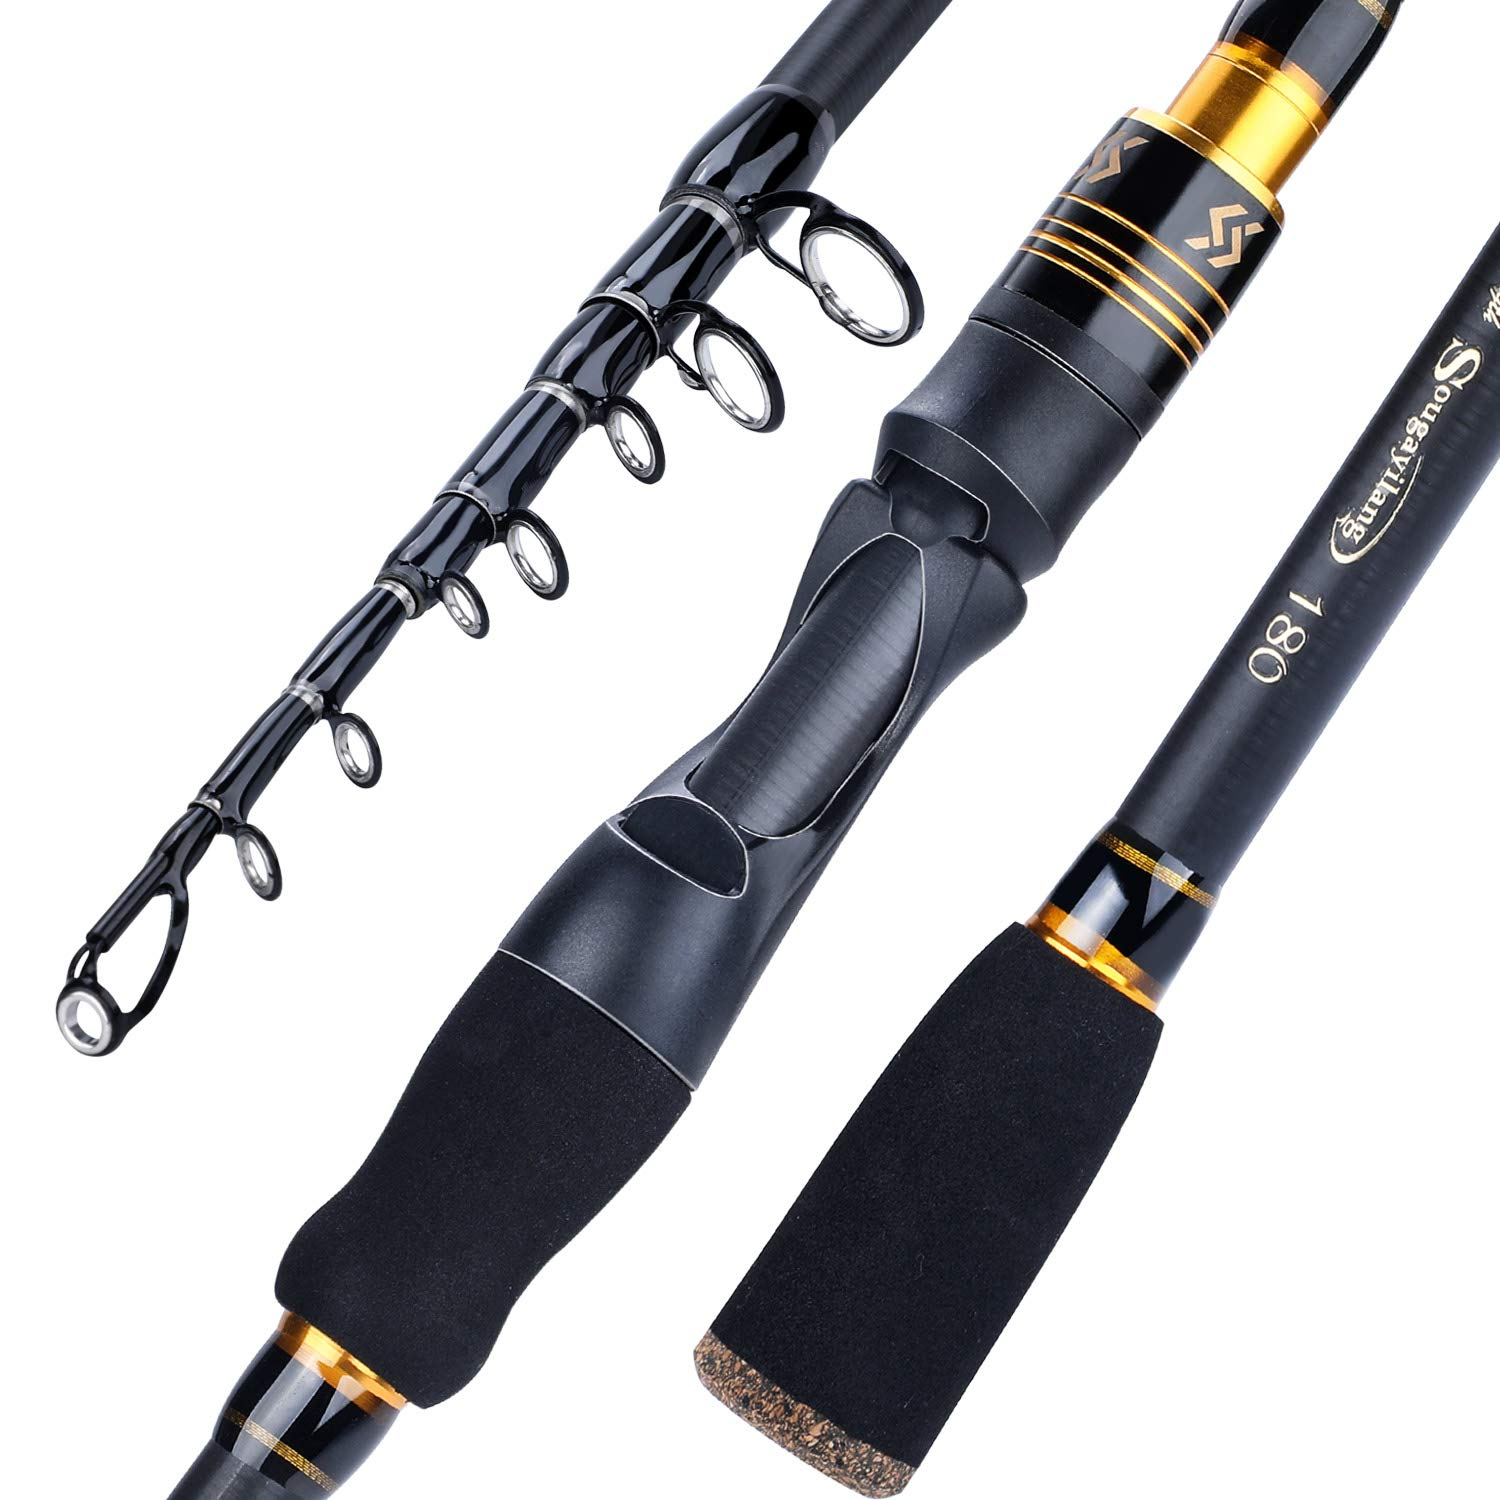 Sougayilang Fishing Rod, 24-Ton Carbon Fiber Telescopic Fishing Pole, Spinning Casting Rod Designed for Bass, for Fresh Saltwater